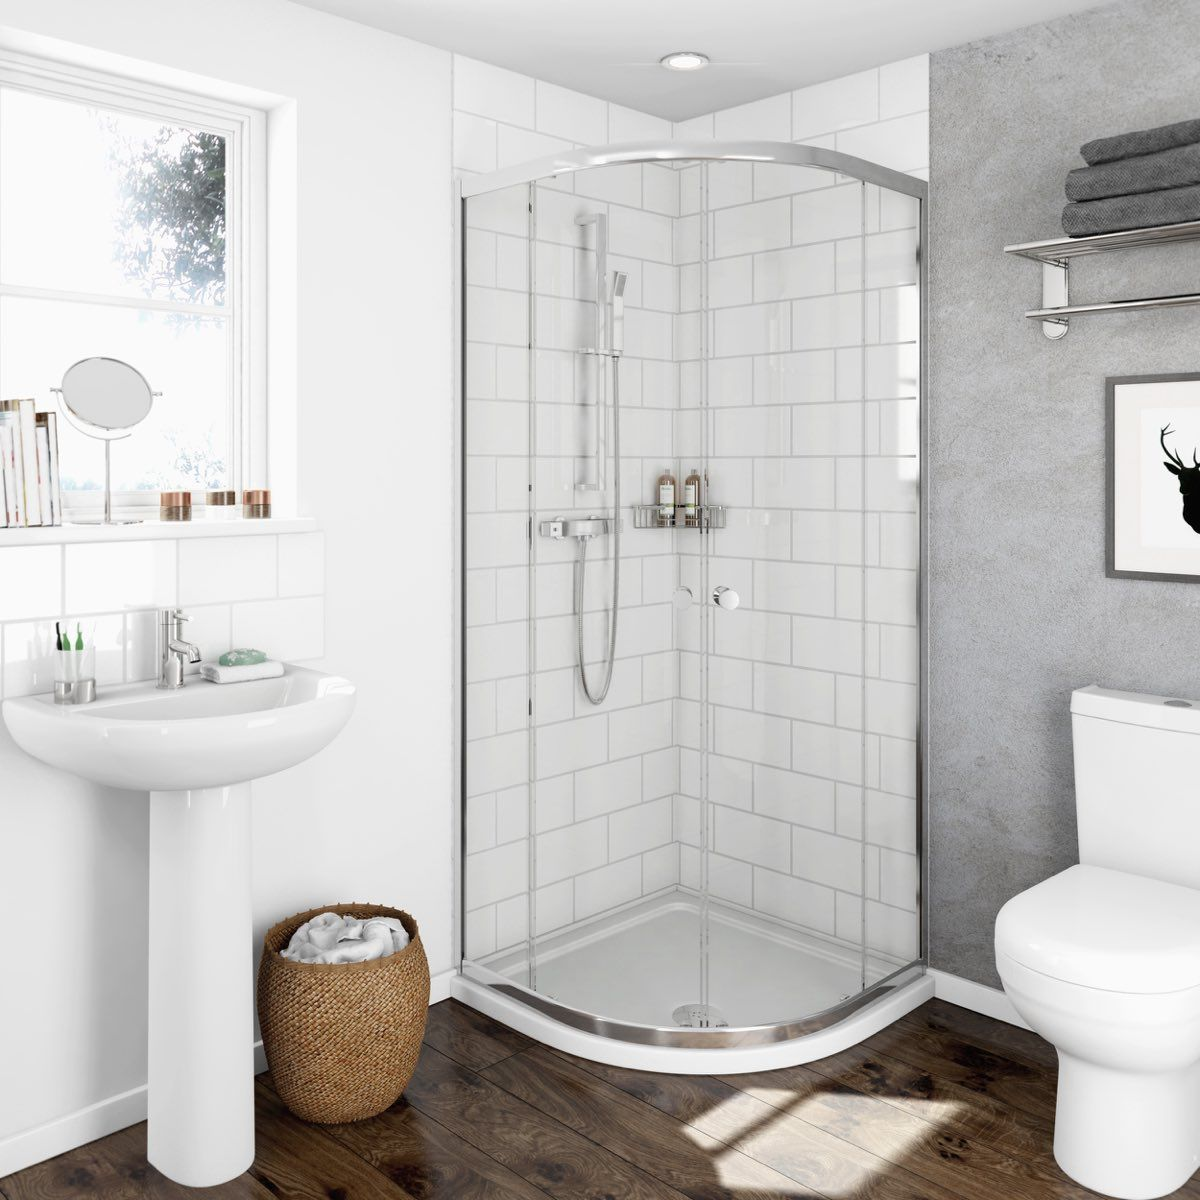 QUE4802.jpg (1200×1200) | Bathroom interiors | Pinterest | Quadrant ...